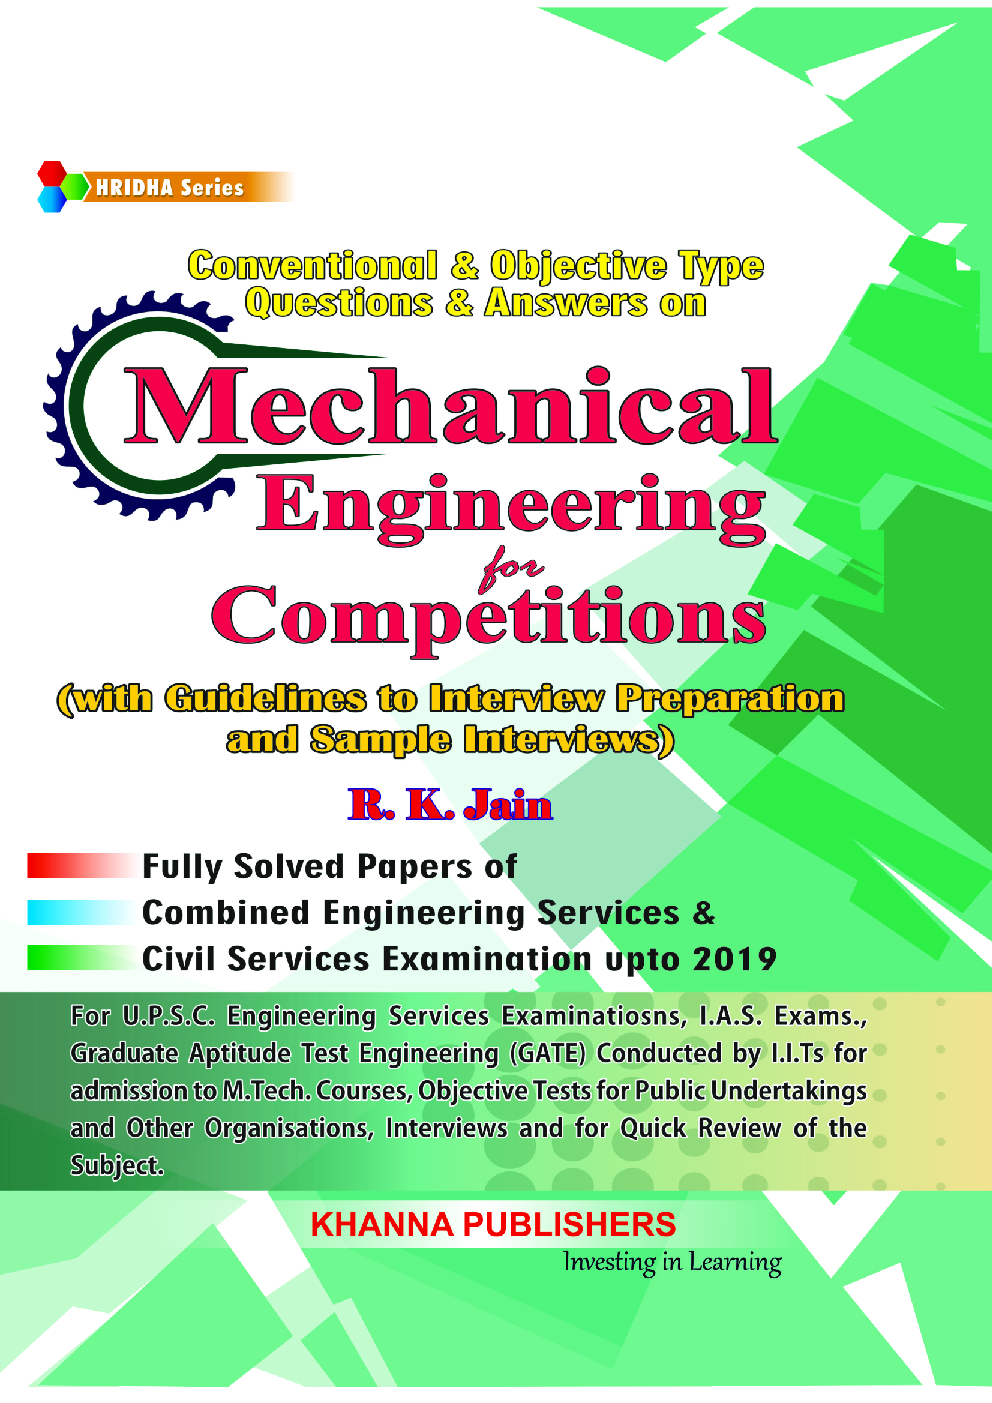 Mechanical Engineering For Competitions - Page 1